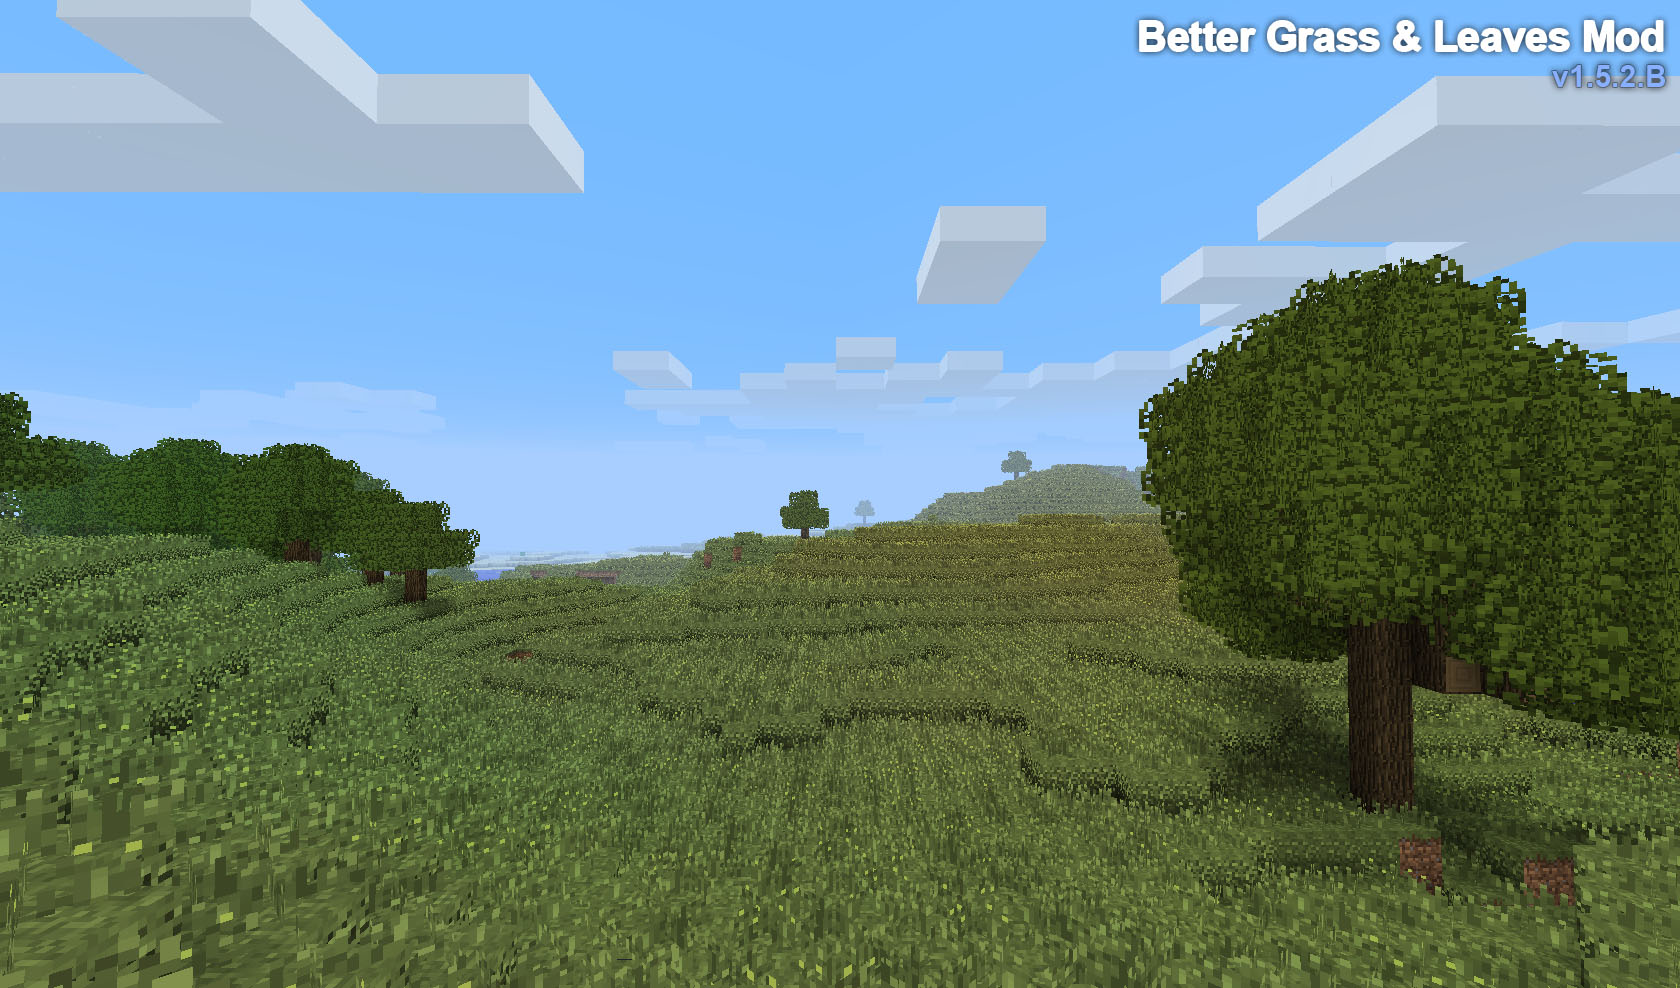 http://minecraft-forum.net/wp-content/uploads/2013/06/fe432__Better-Grass-and-Leaves-Mod-1.jpg